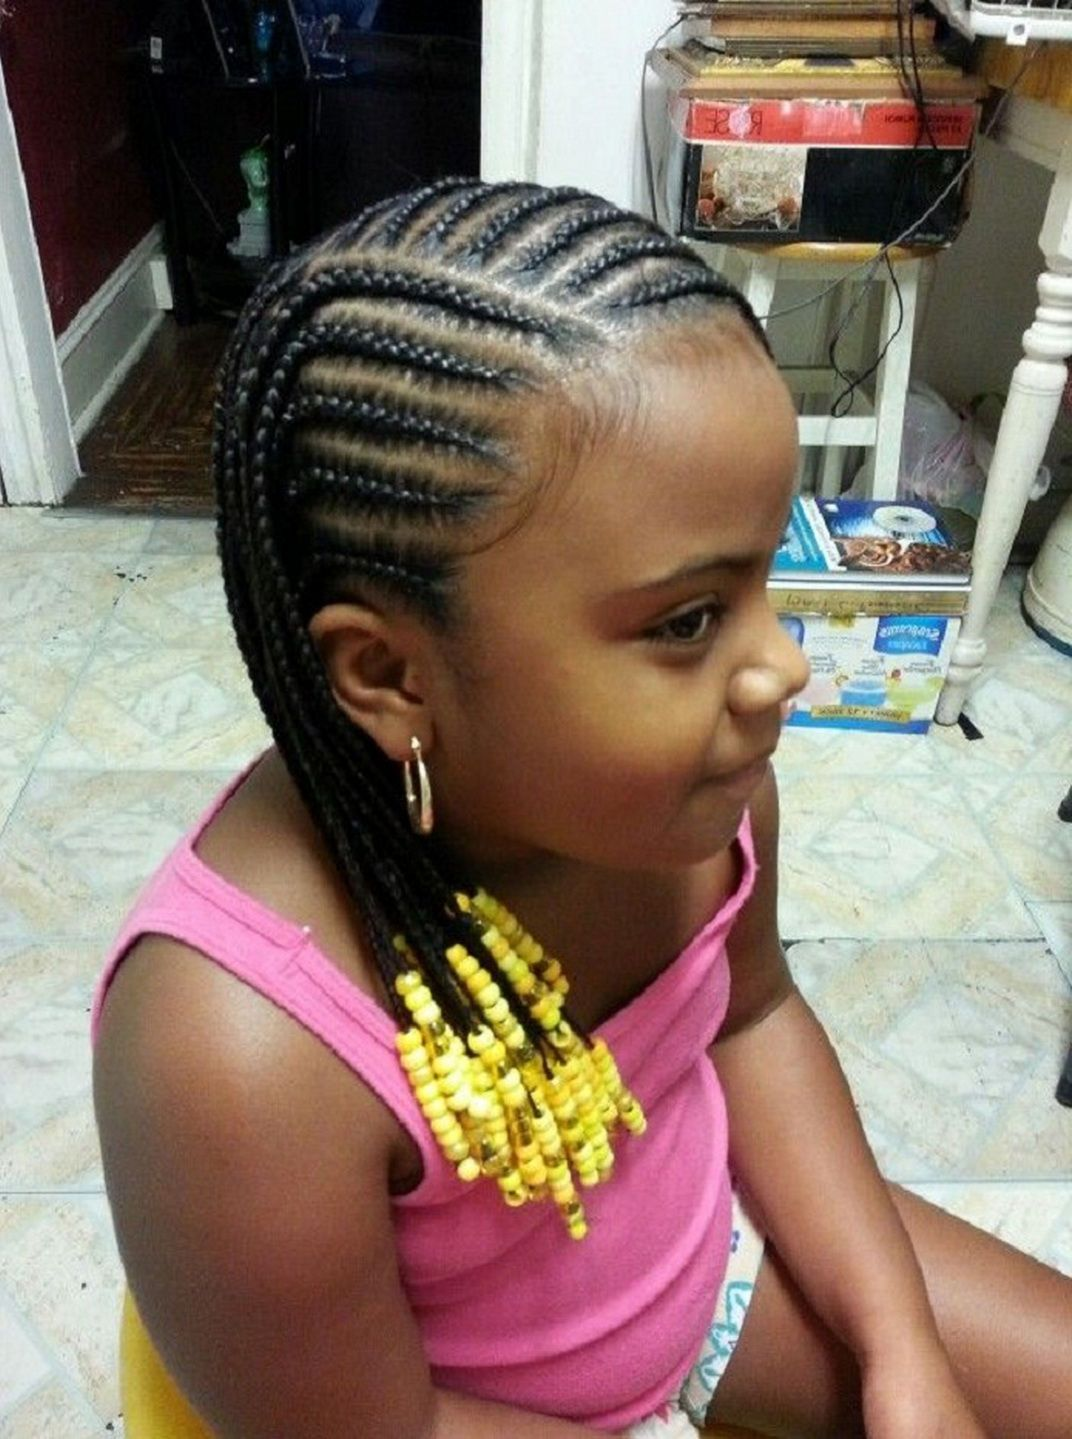 208 Braided Mohawk Hairstyles For Little Girls Hair Style Ideas